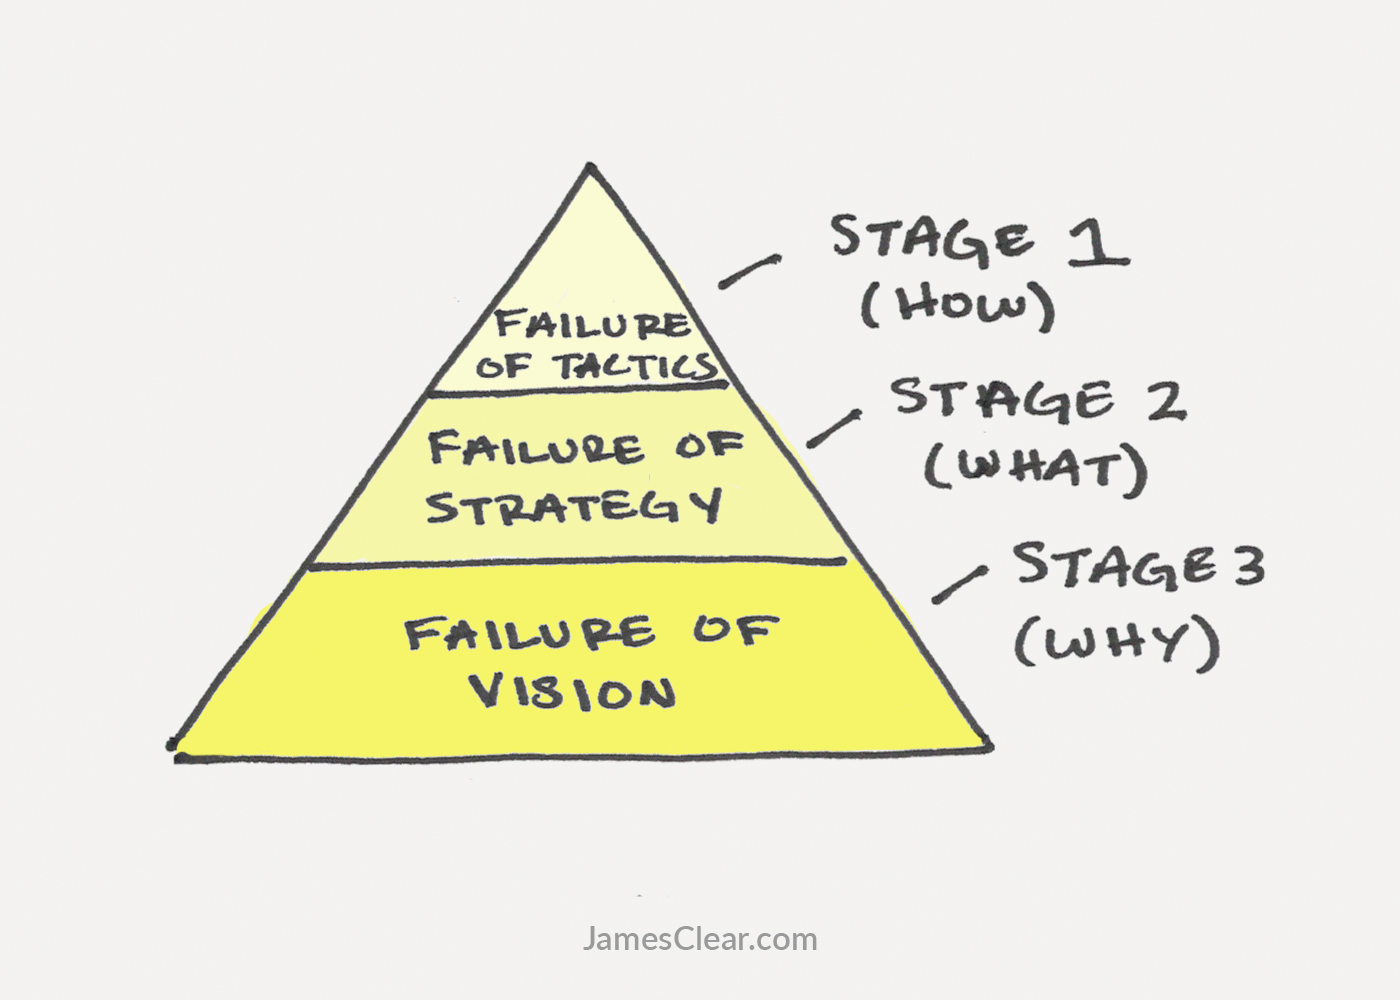 If I avoid strategy and vision, I can narrow the scope of my failures. That's the right takeaway, I'm sure of it.